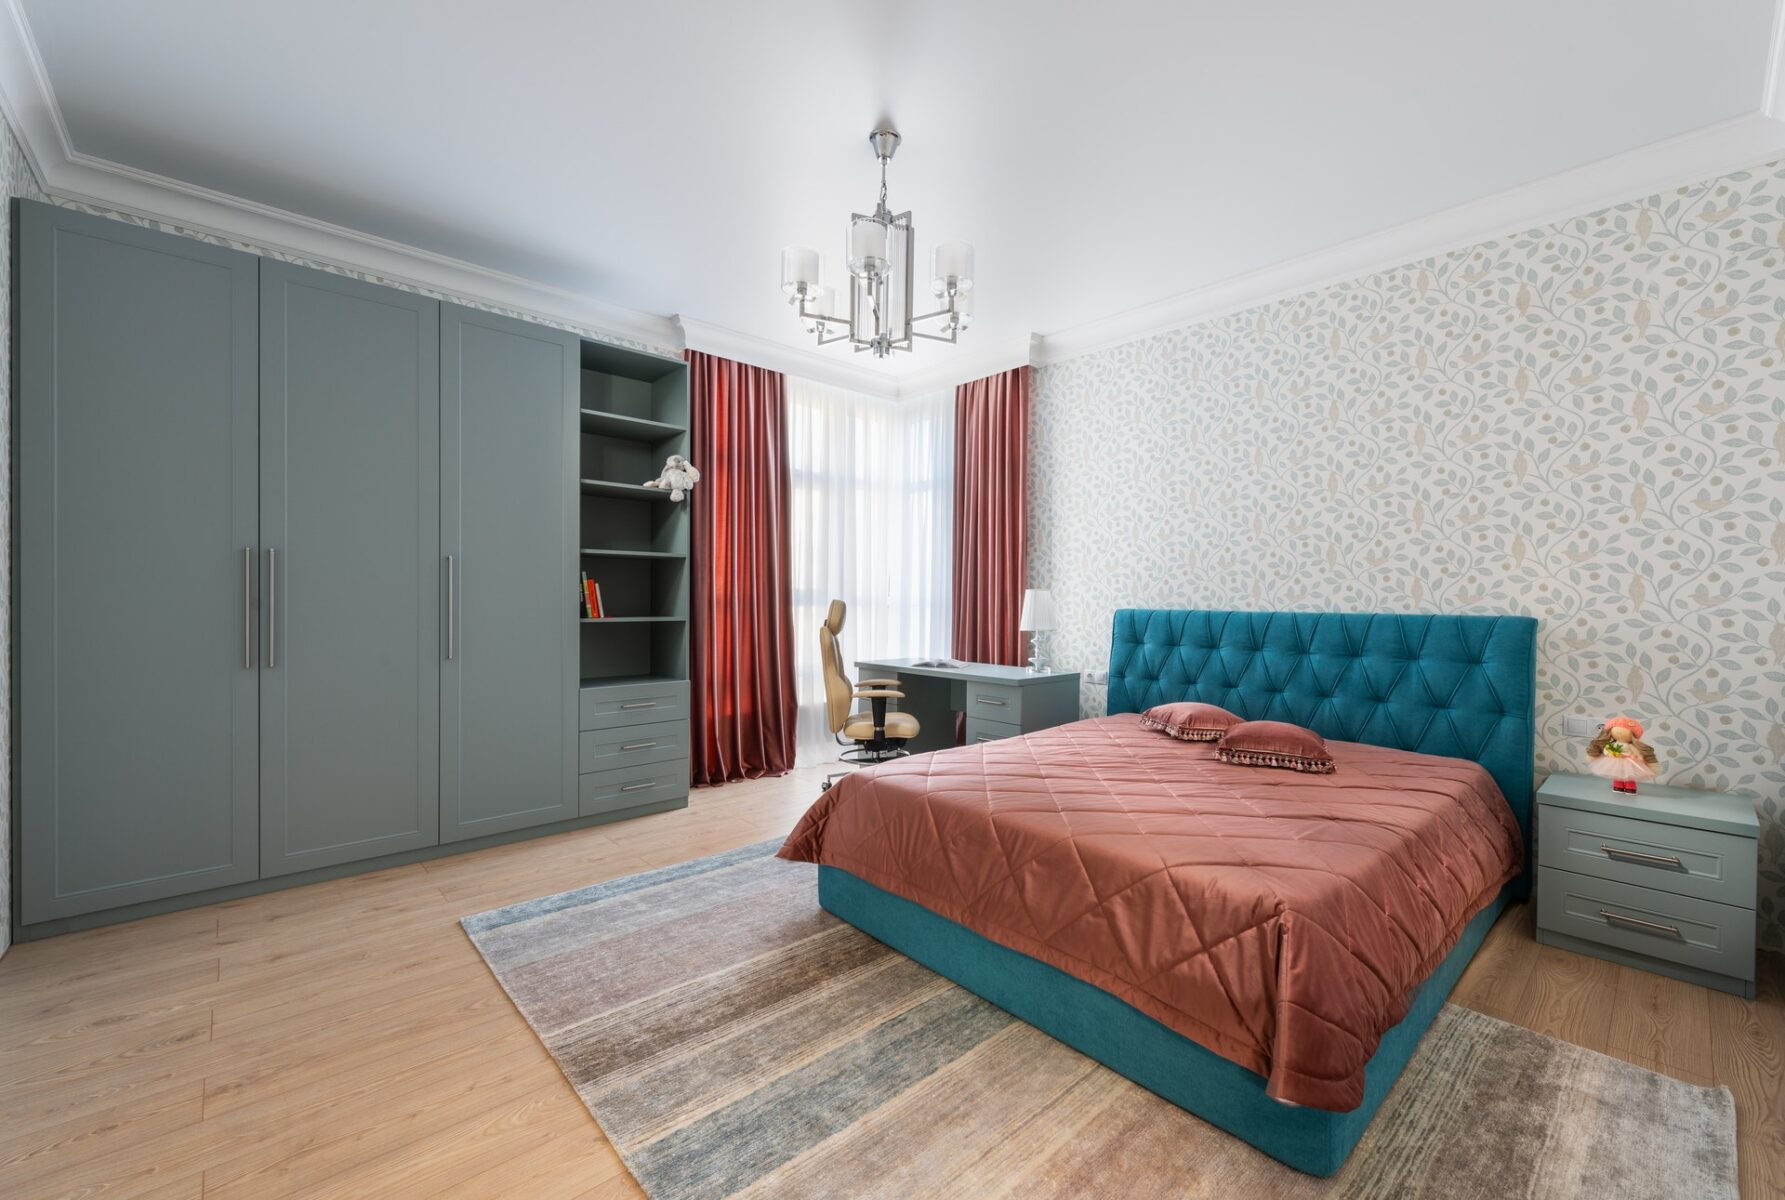 How to Pick the Perfect Sized Rug for Your Bedroom